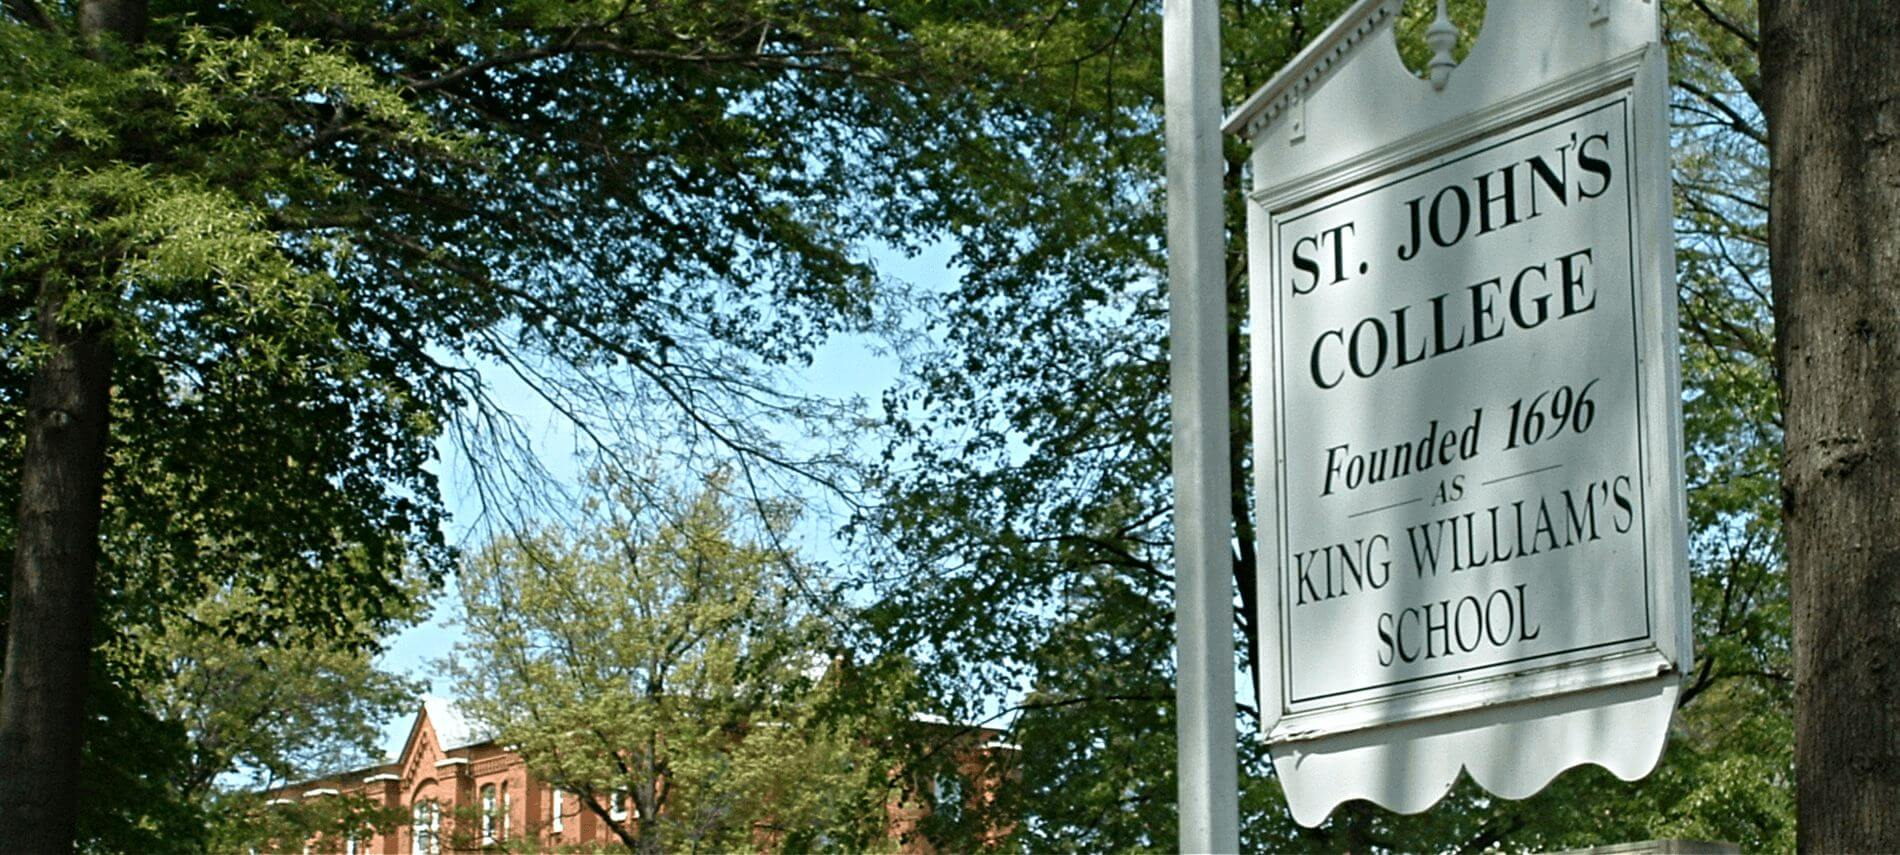 White colonial style sign for St Johns College